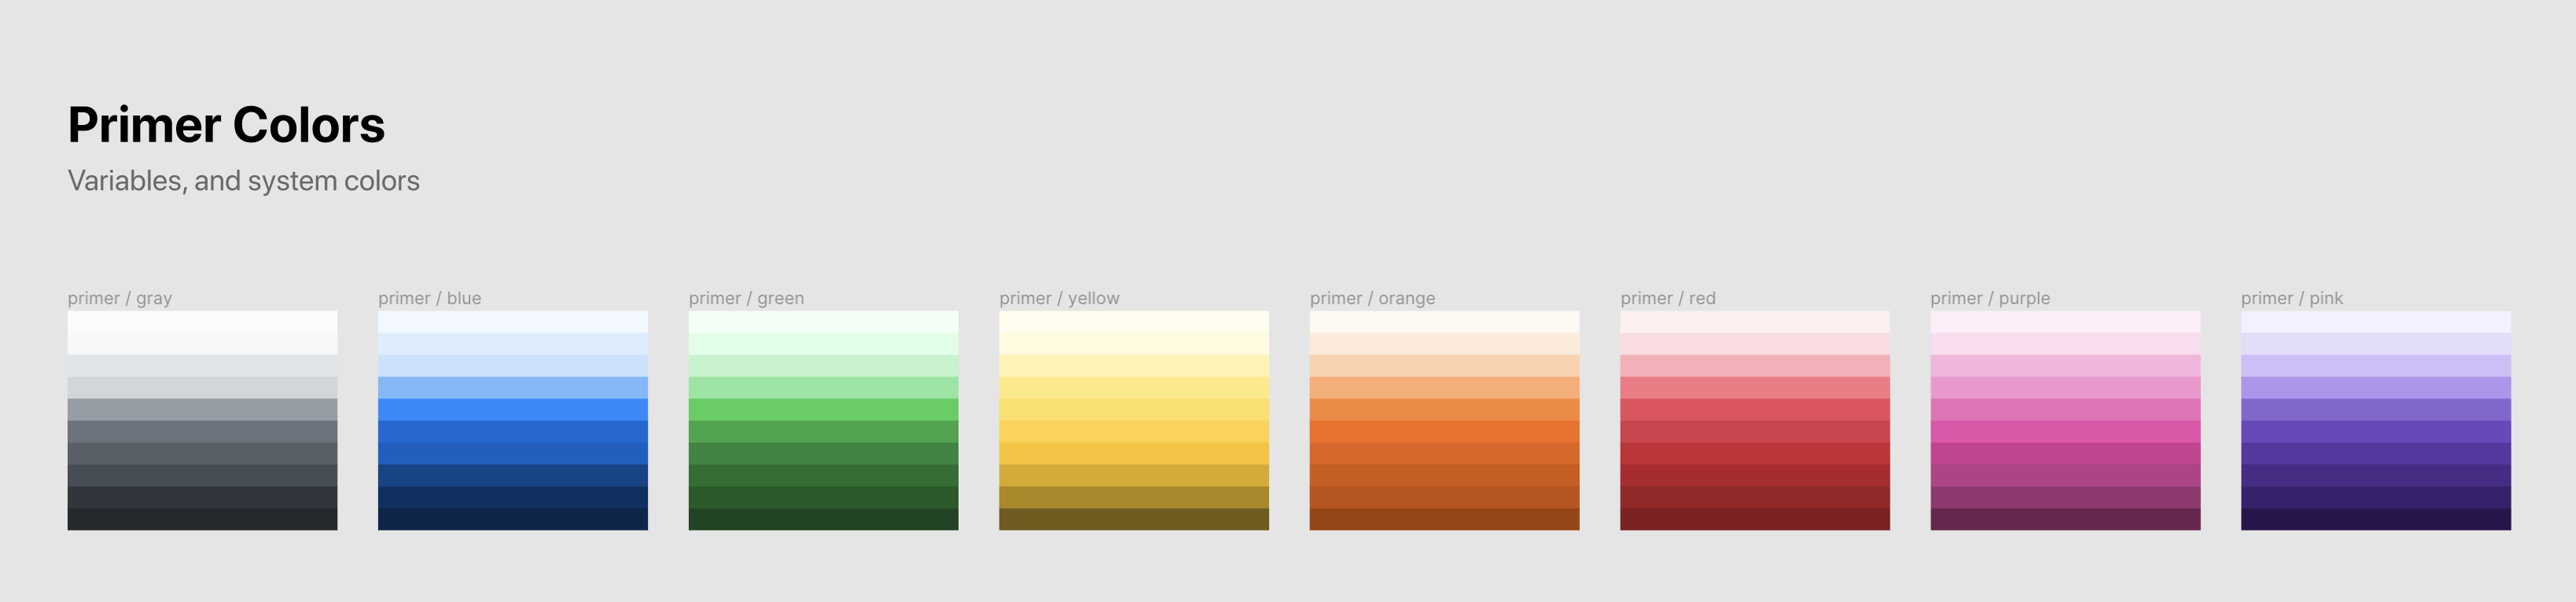 Primer Primitives base colors displayed together